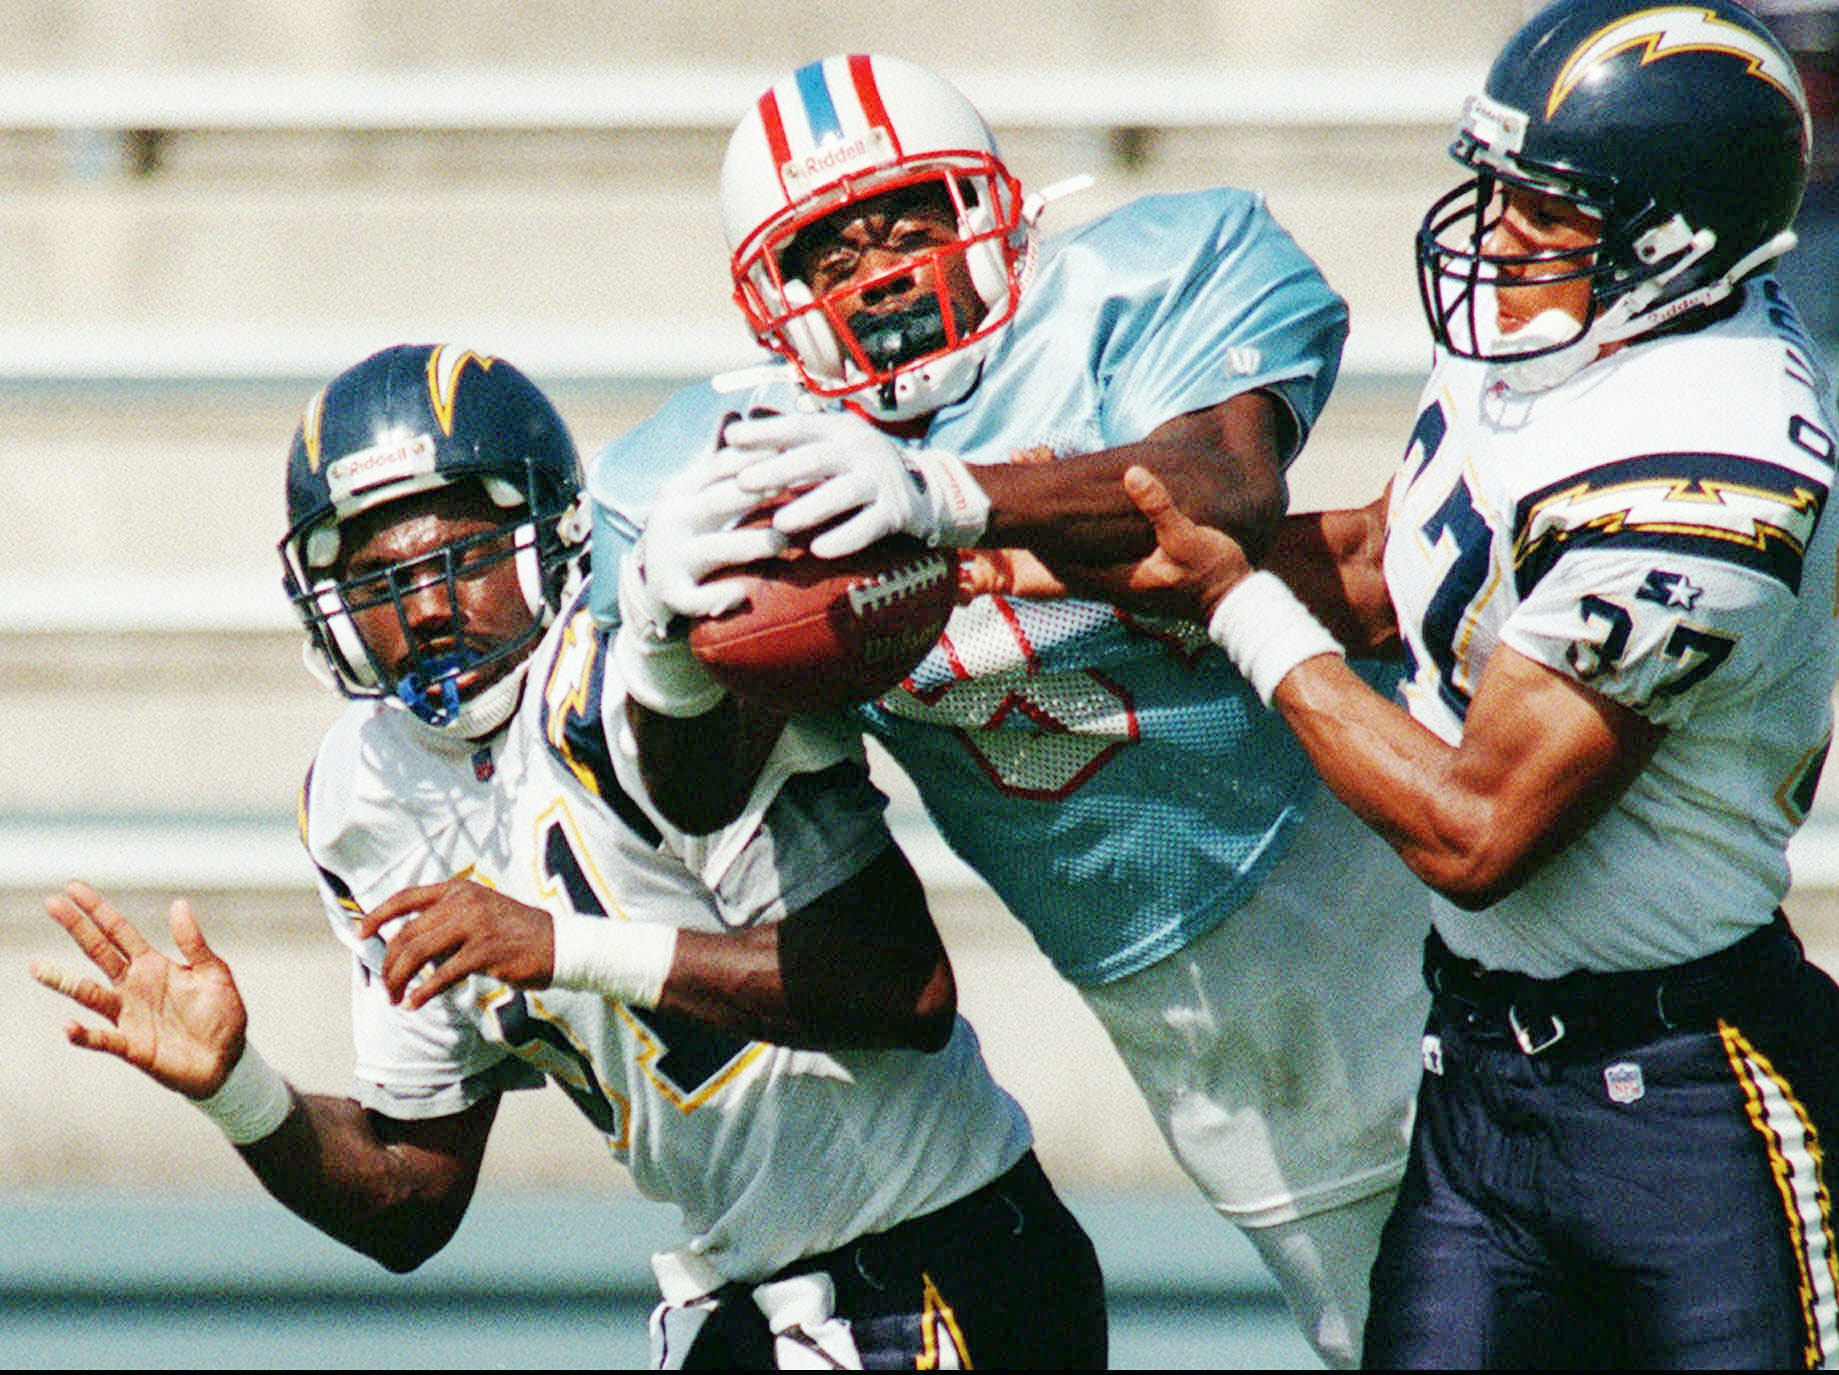 Houston Oilers receiver Chris Sanders is sandwiched by San Diego Charger defenders Willie Clark, left, and Rodney Harrison during morning practice at the Oilers training camp Aug. 16, 1995 at Trinity University in San Antonio.